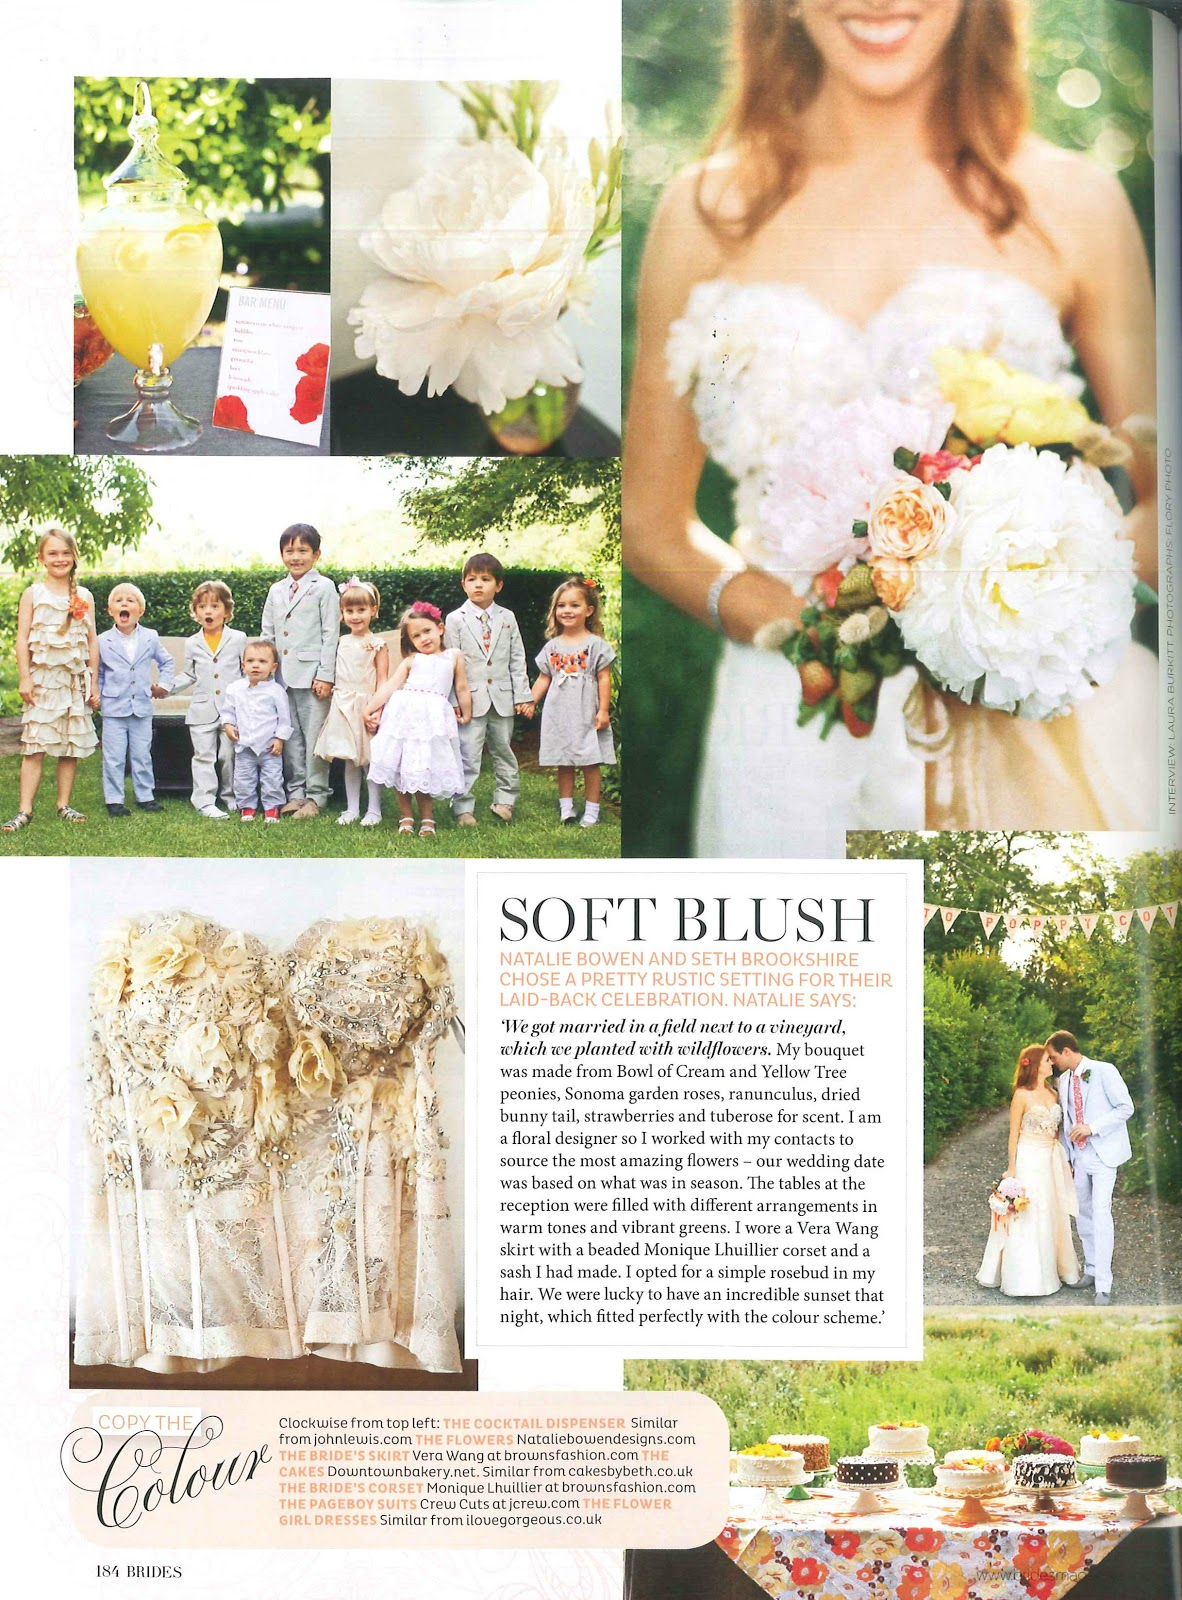 Sonoma valley wedding featured in british brides amy nichols you can enjoy more wedding photos and details in amys behind the scenes orange and red healdsburg wedding post the 100 layer cake feature and the izmirmasajfo